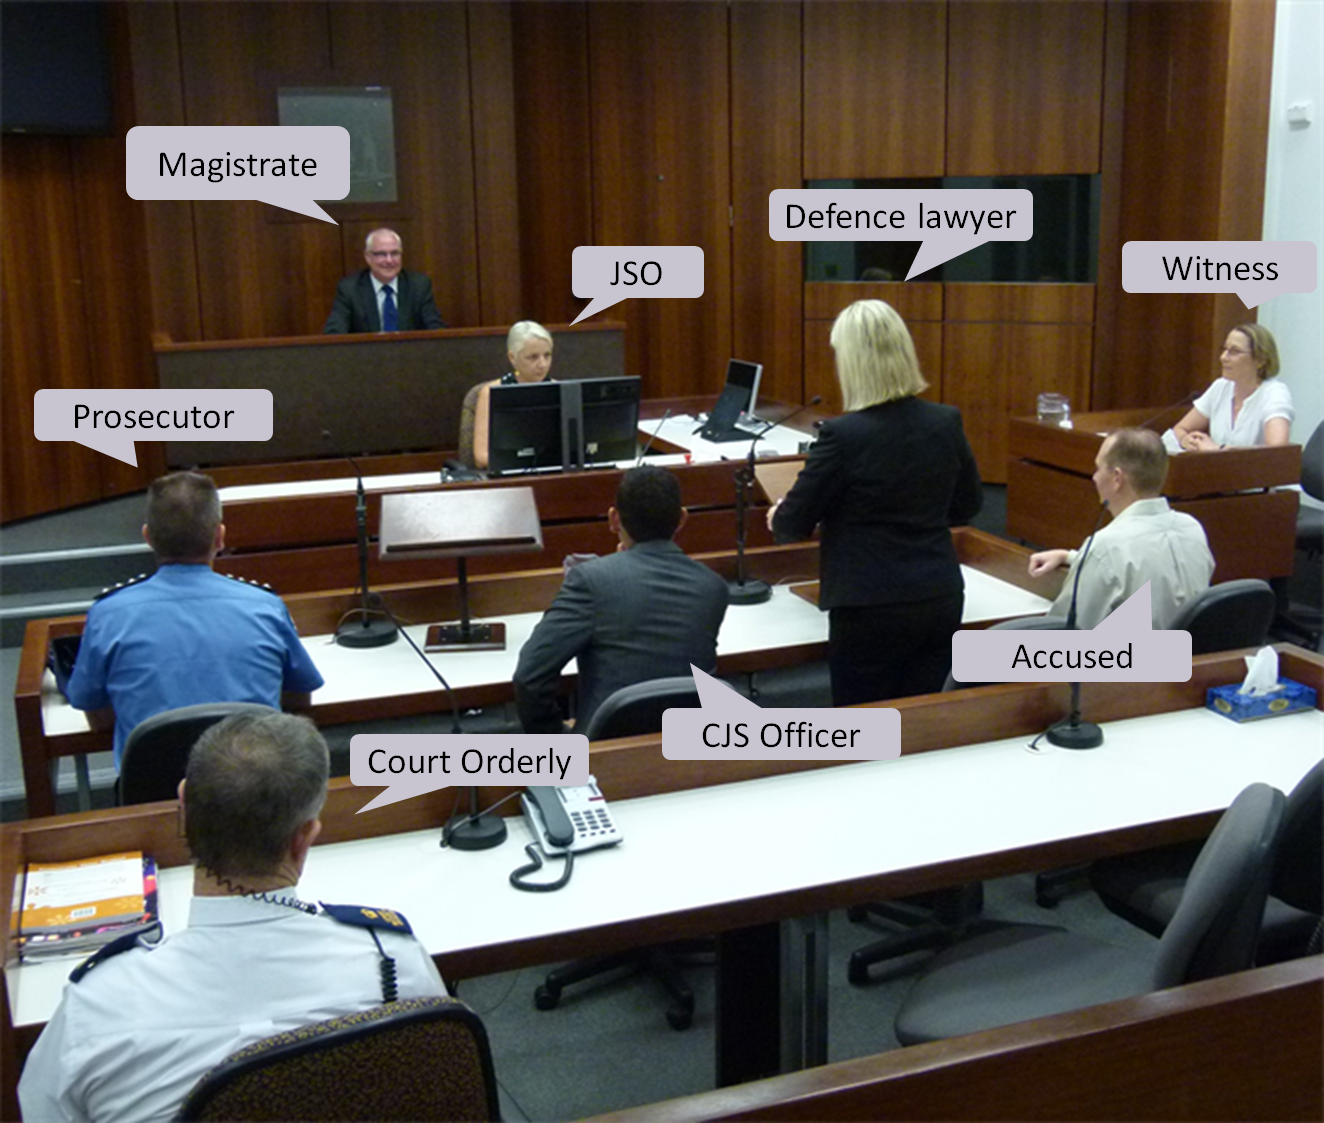 Criminal courtroom layout